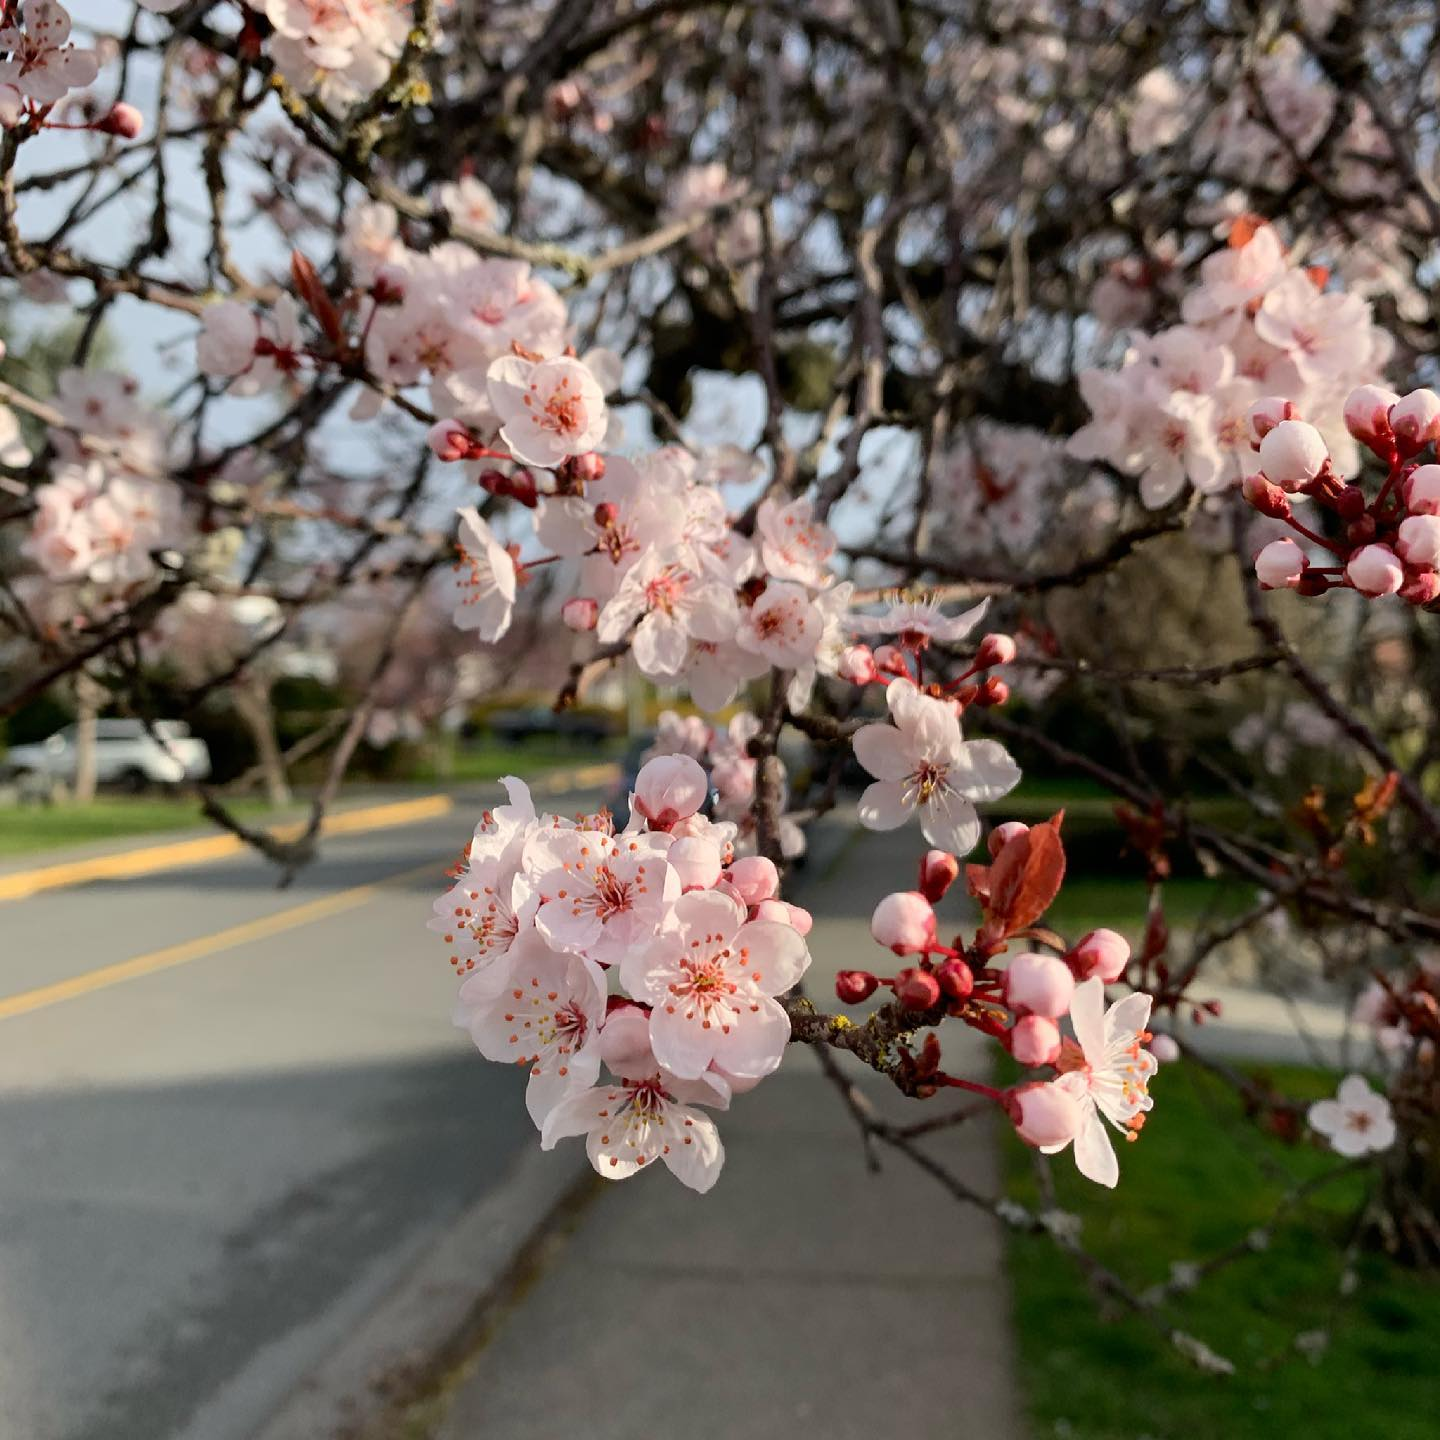 Signs of spring are starting to pop out. #yyj #spring #cherryblossoms